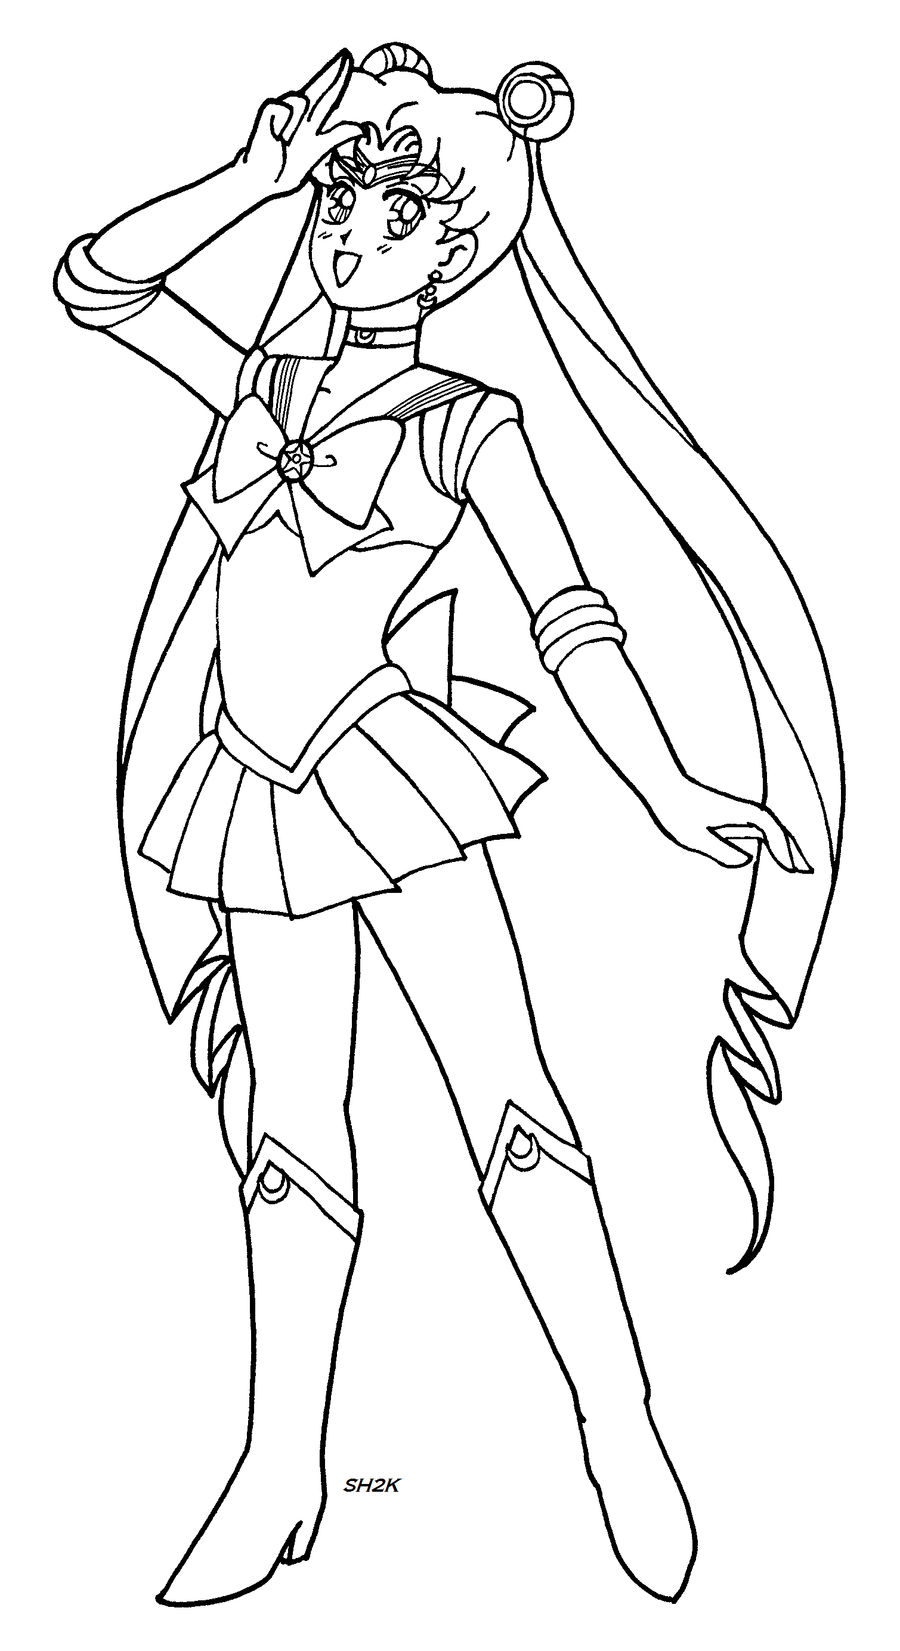 Sailor moon lineart msp by sailorharmony2000 on deviantart for Sailor moon coloring pages